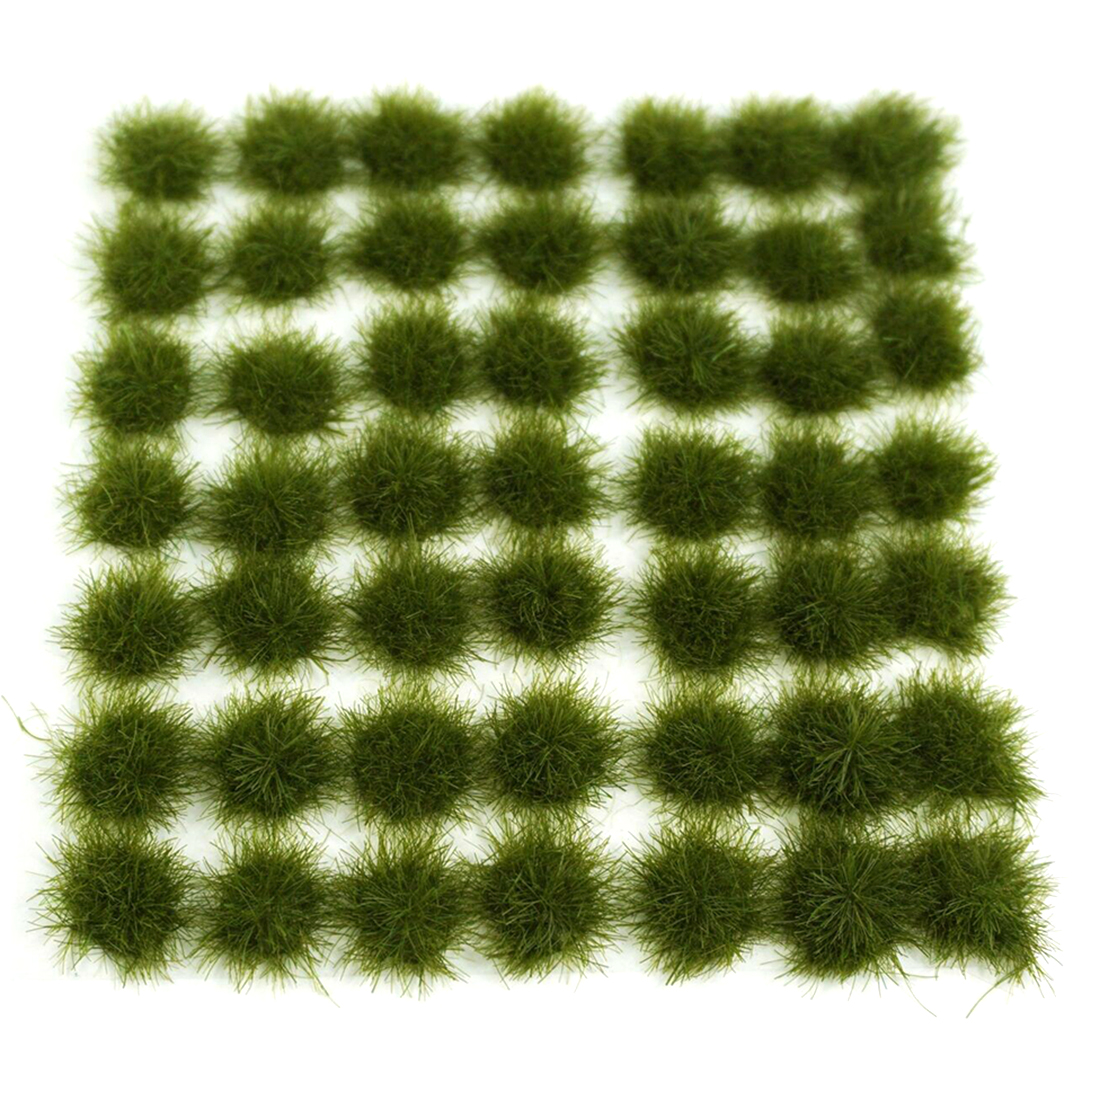 New Grass Cluster Static Grass Tufts For 1:35 1:48 1:72 1:87 Sand Table Architecture Model - Medium Green